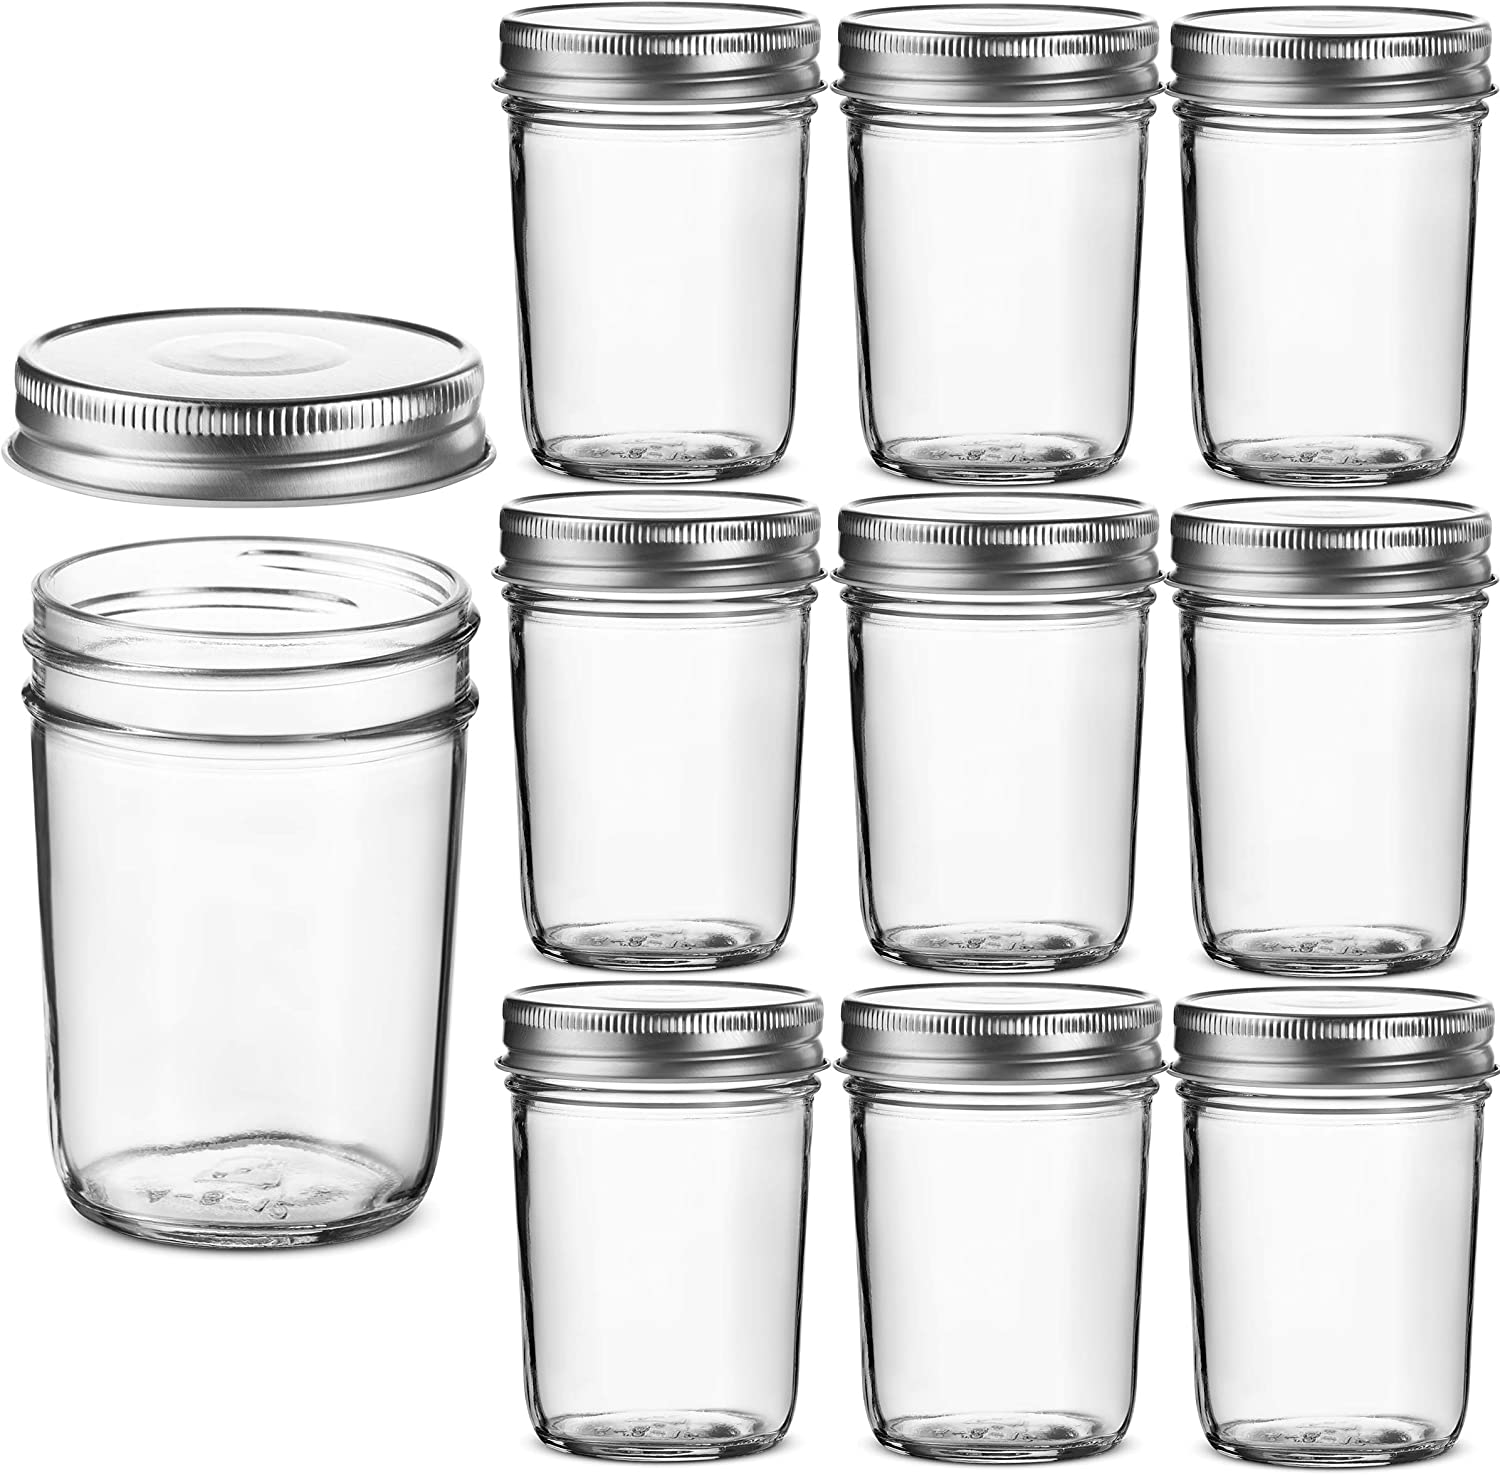 Glass Regular Mouth Mason Jars, 8 Ounce Glass Jars with Silver Metal Airtight Lids for Meal Prep, Food Storage, Canning, Drinking, for Overnight Oats, Jelly, Dry Food, Spices, Salads, Yogurt (10 Pack)